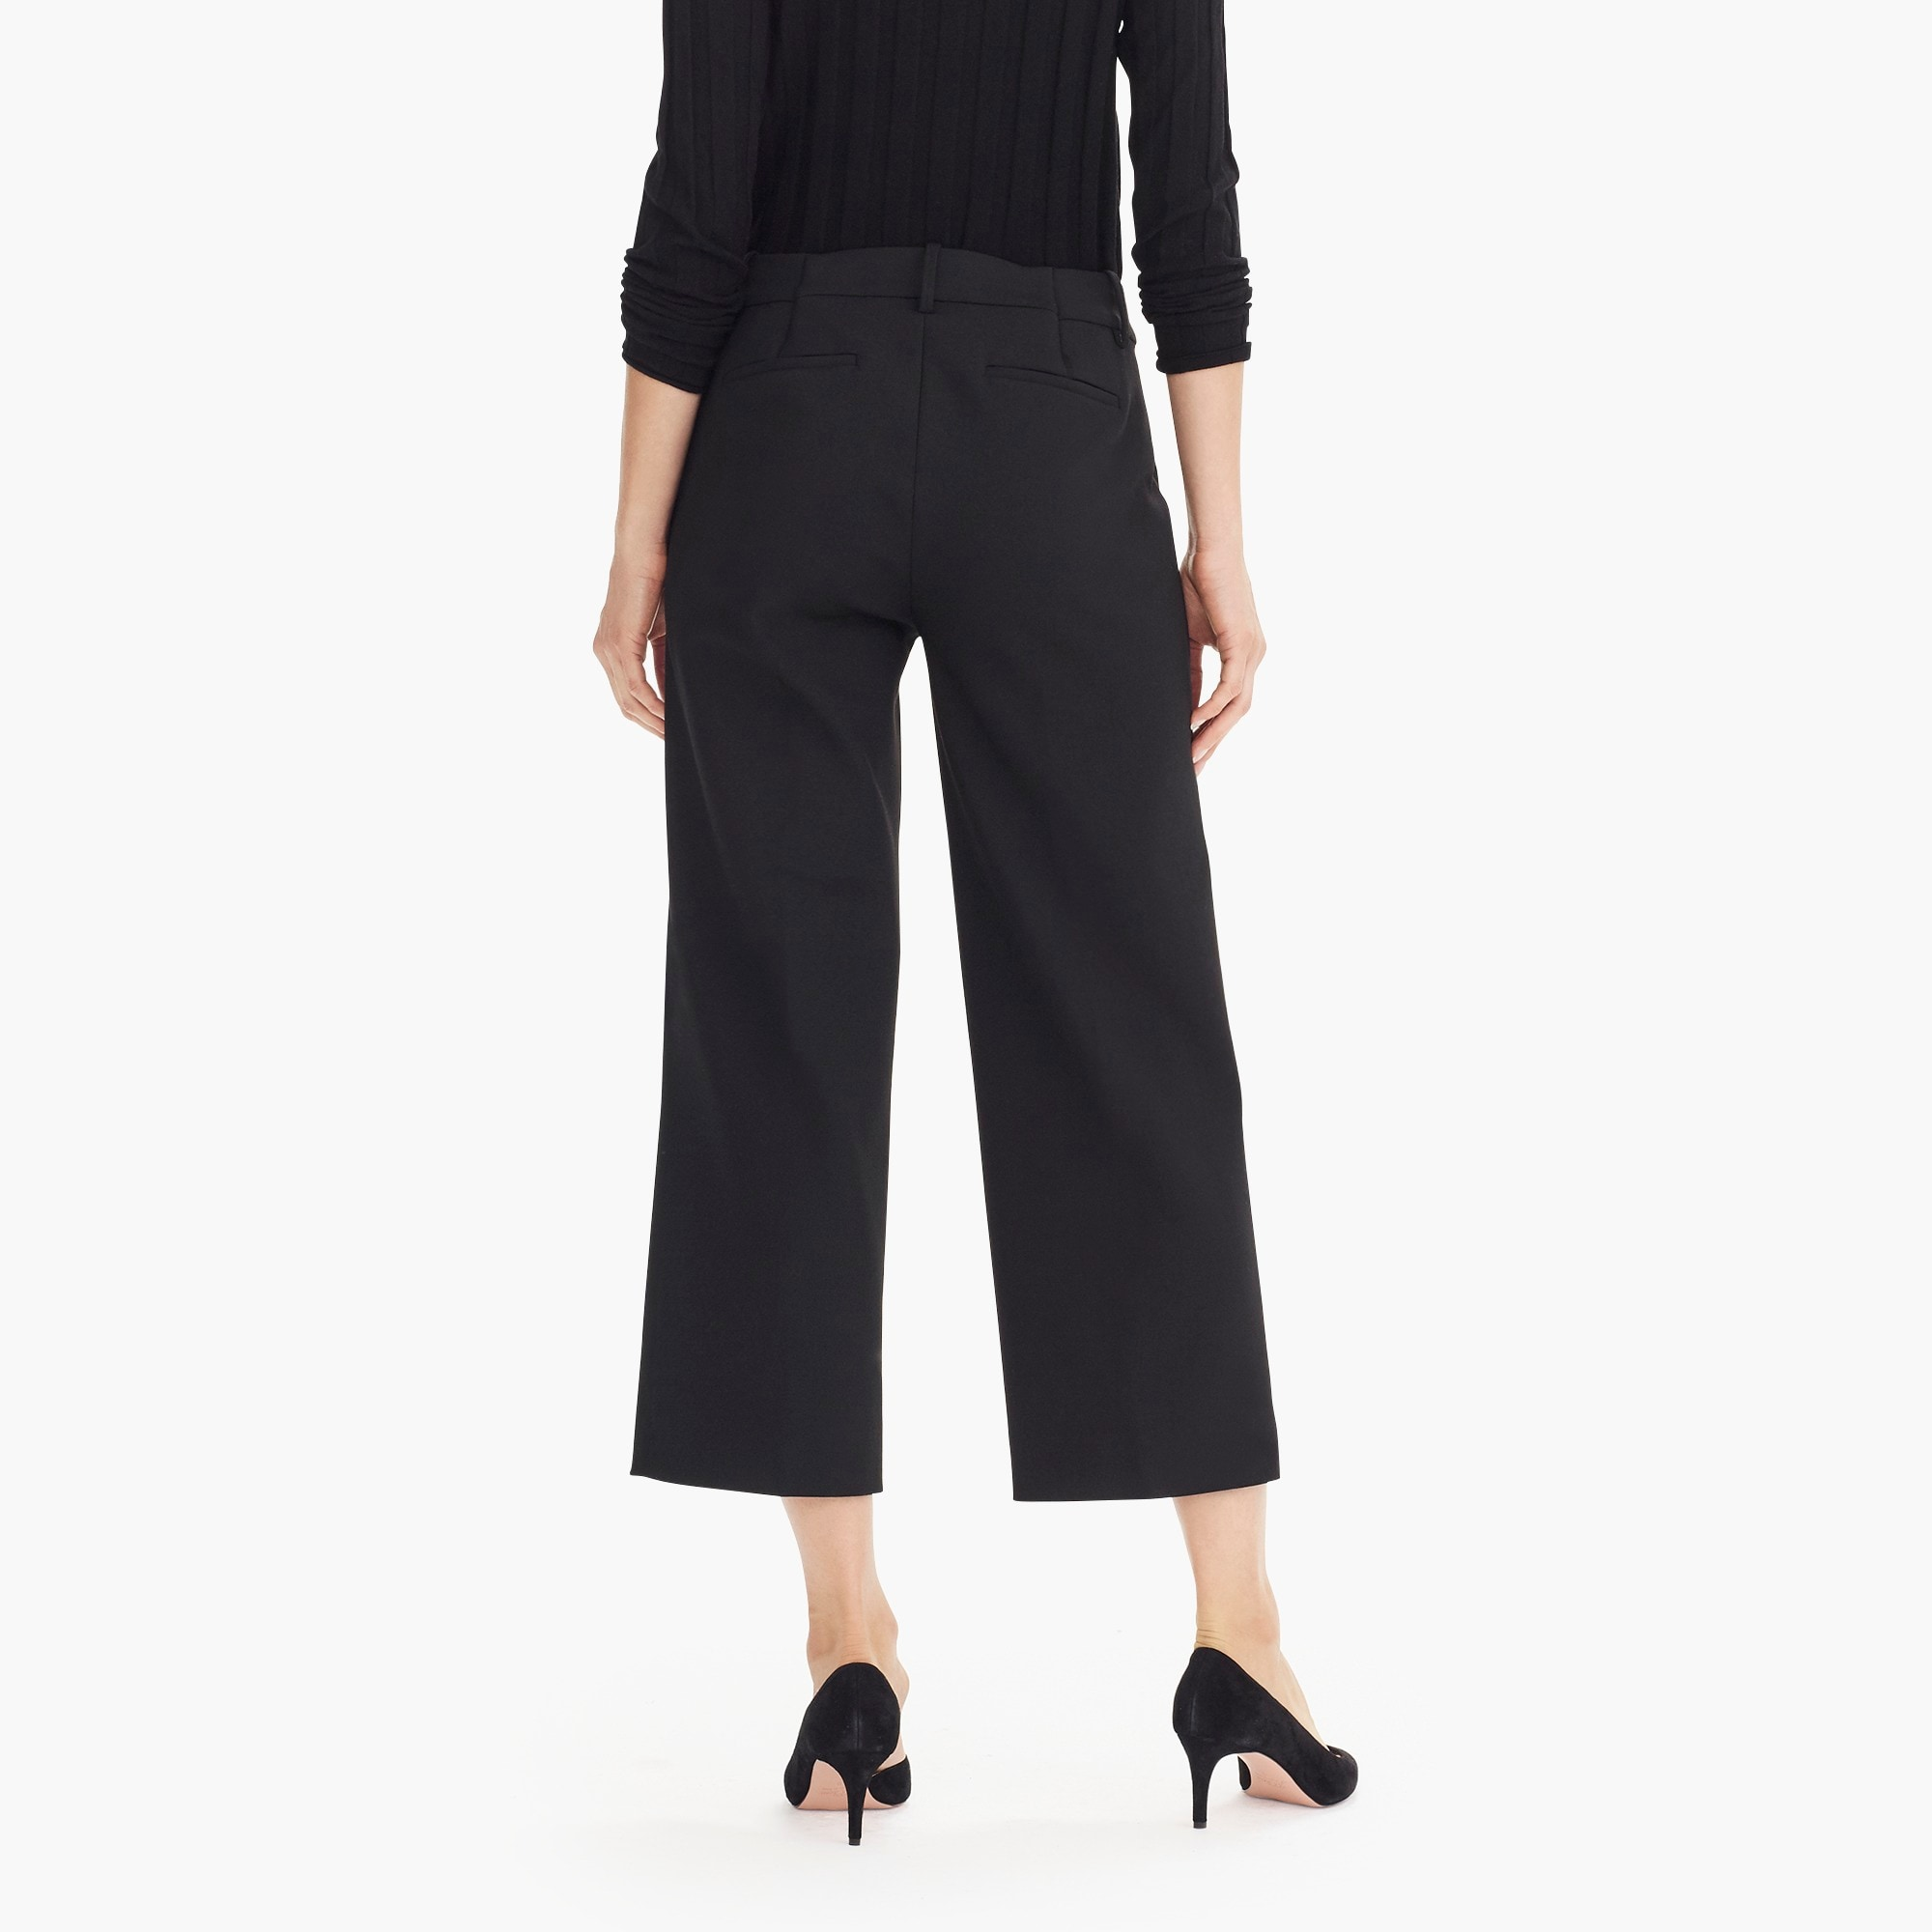 Image 6 for Petite High-rise Peyton wide-leg pant in four-season stretch